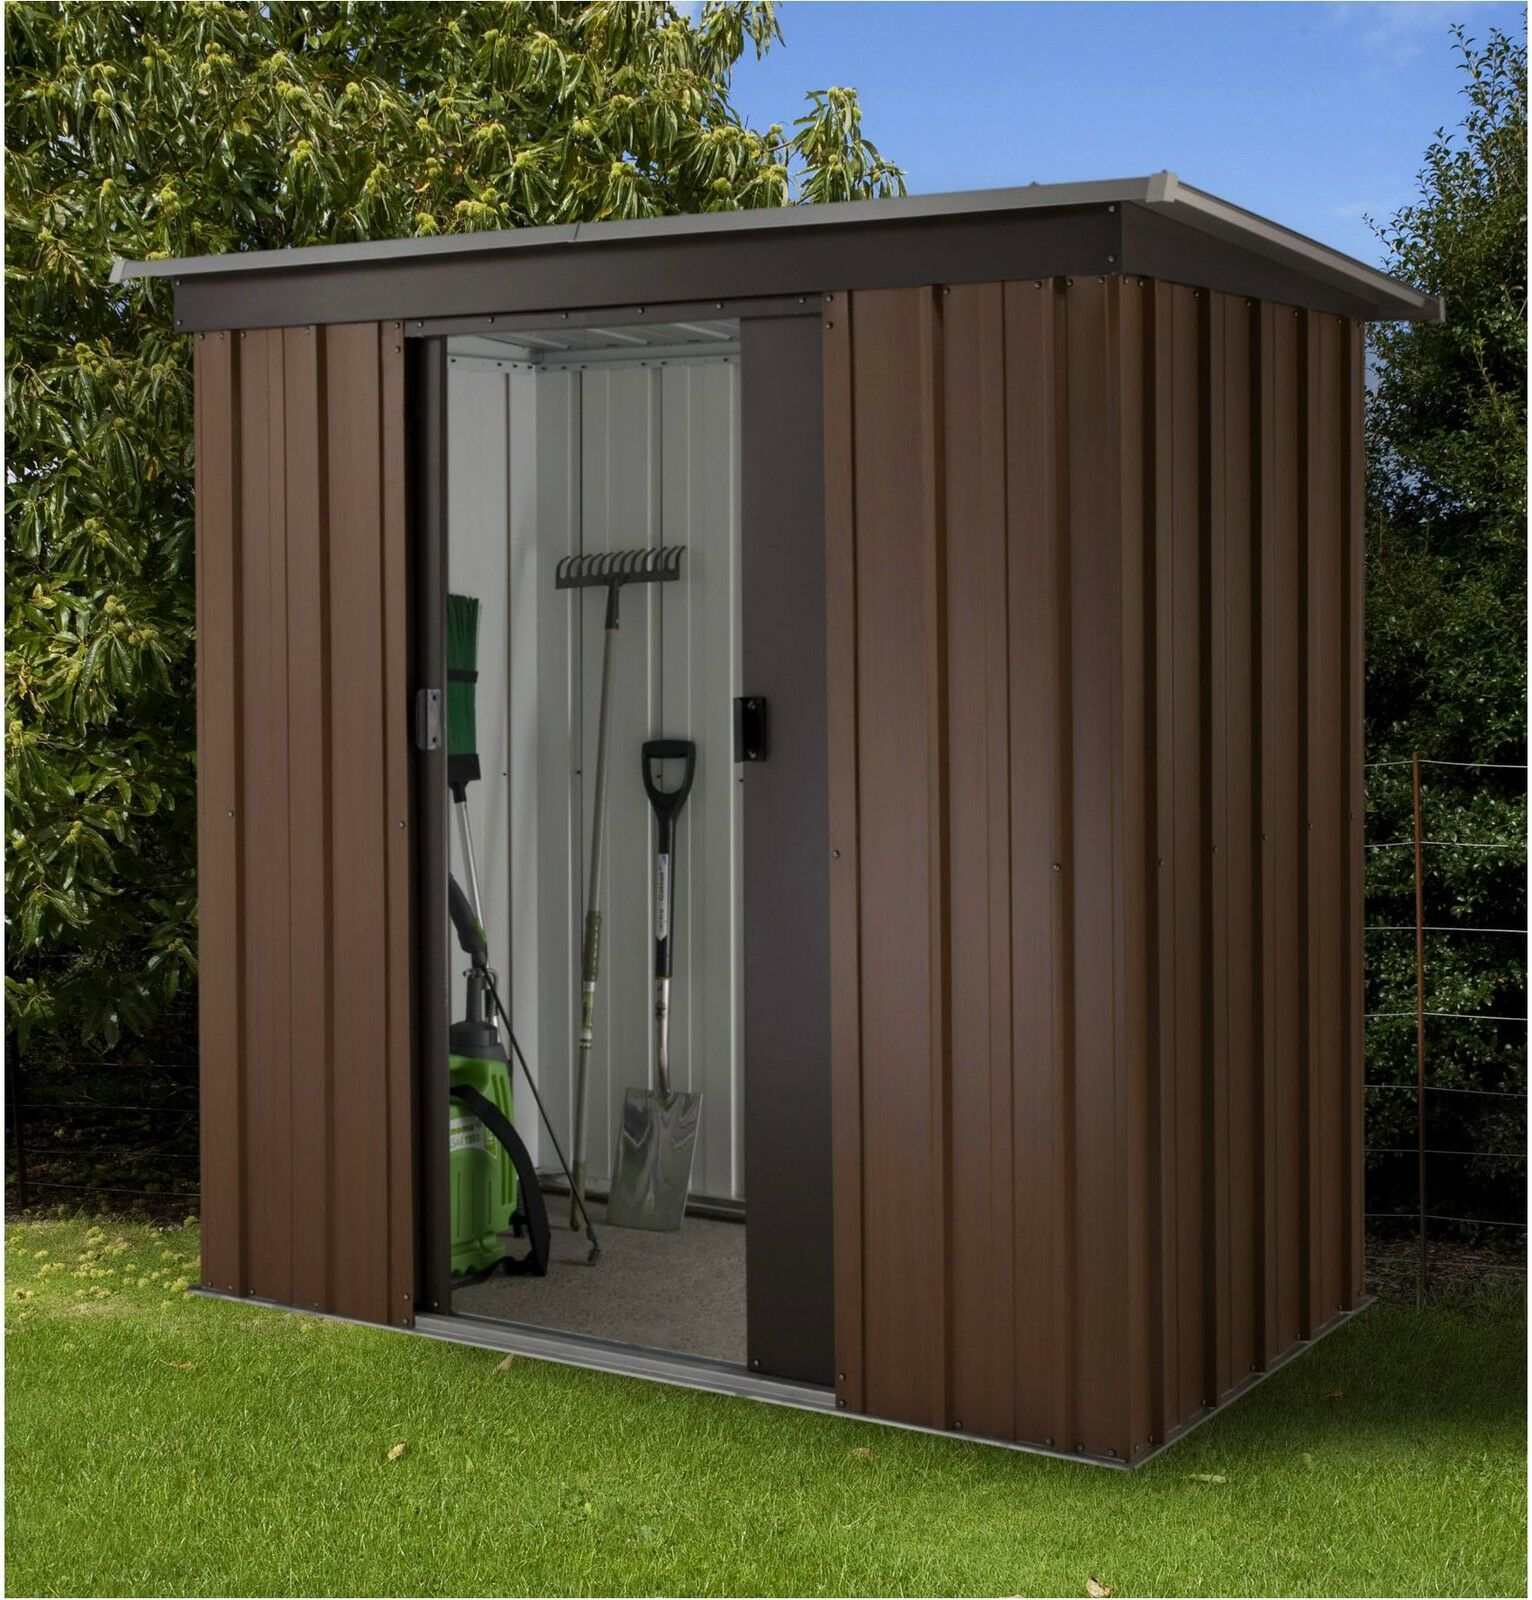 8 x 71 ft 24 22m metal apex garden shed courtesy of westmount